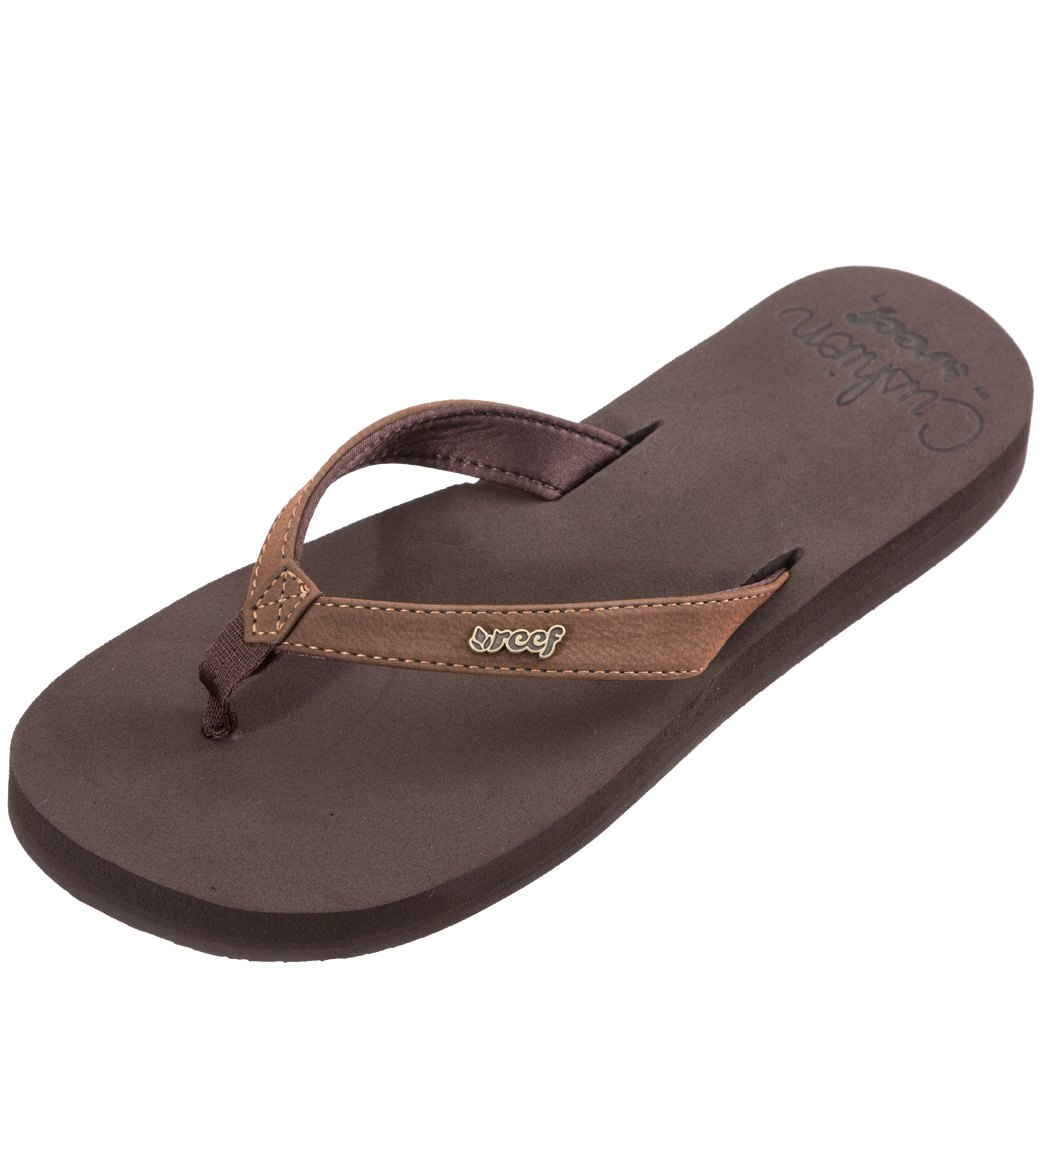 a3d4fef7bc7a Reef Women s Cushion Luna Flip Flop at SwimOutlet.com